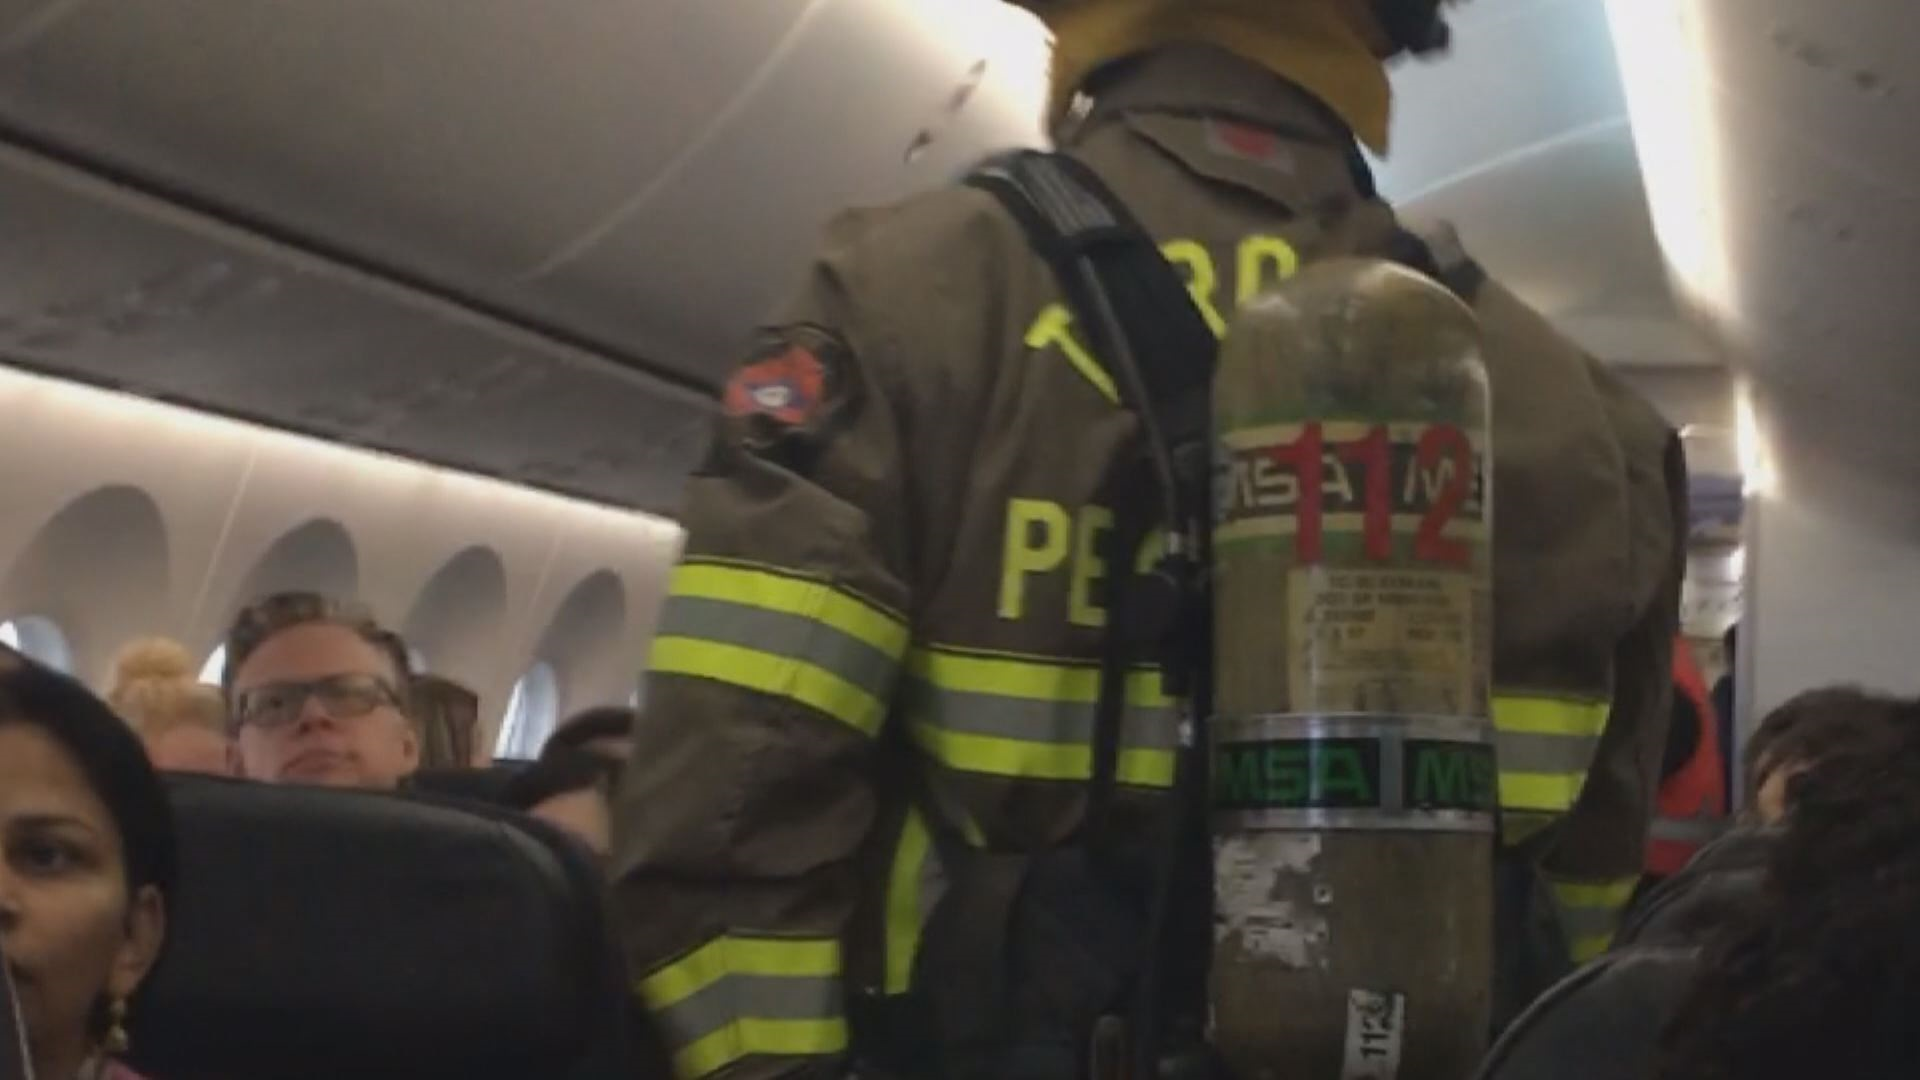 Passenger burned in cellphone fire on Air Canada flight in Toronto